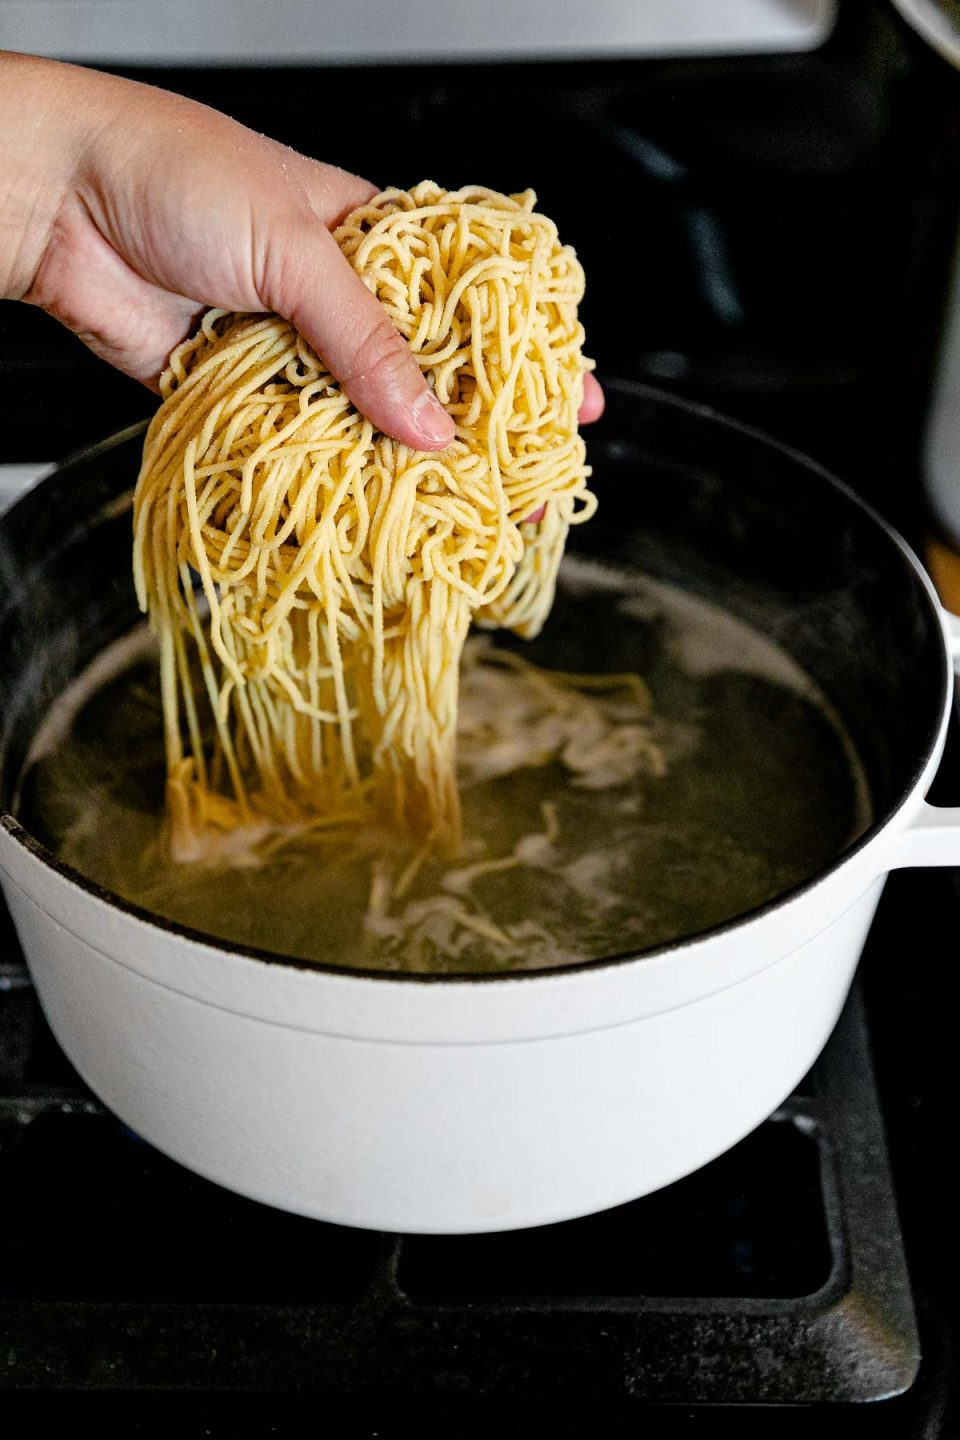 A woman's hand adds fresh homemade pasta to a white pot filled with boiling water. The pot rests atop a gas stovetop range.